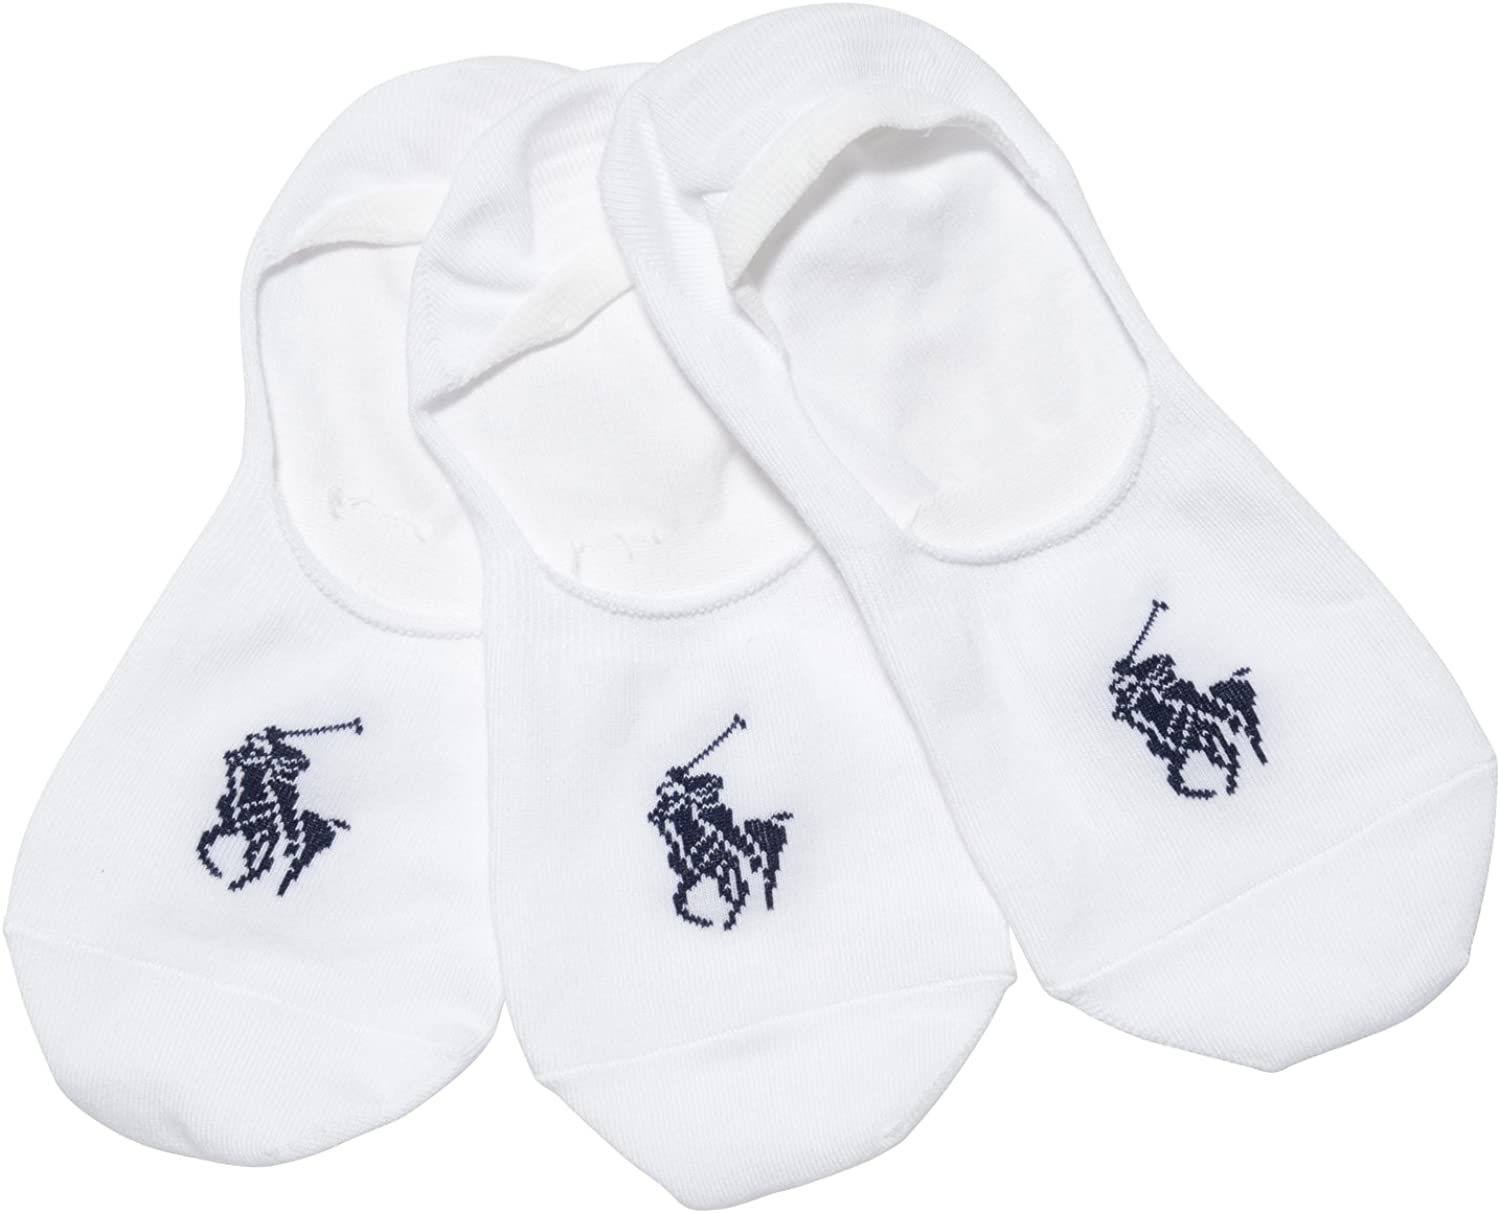 Polo Ralph Lauren Men's No Show Liner With Arch Support - 3 Pack 8273PK